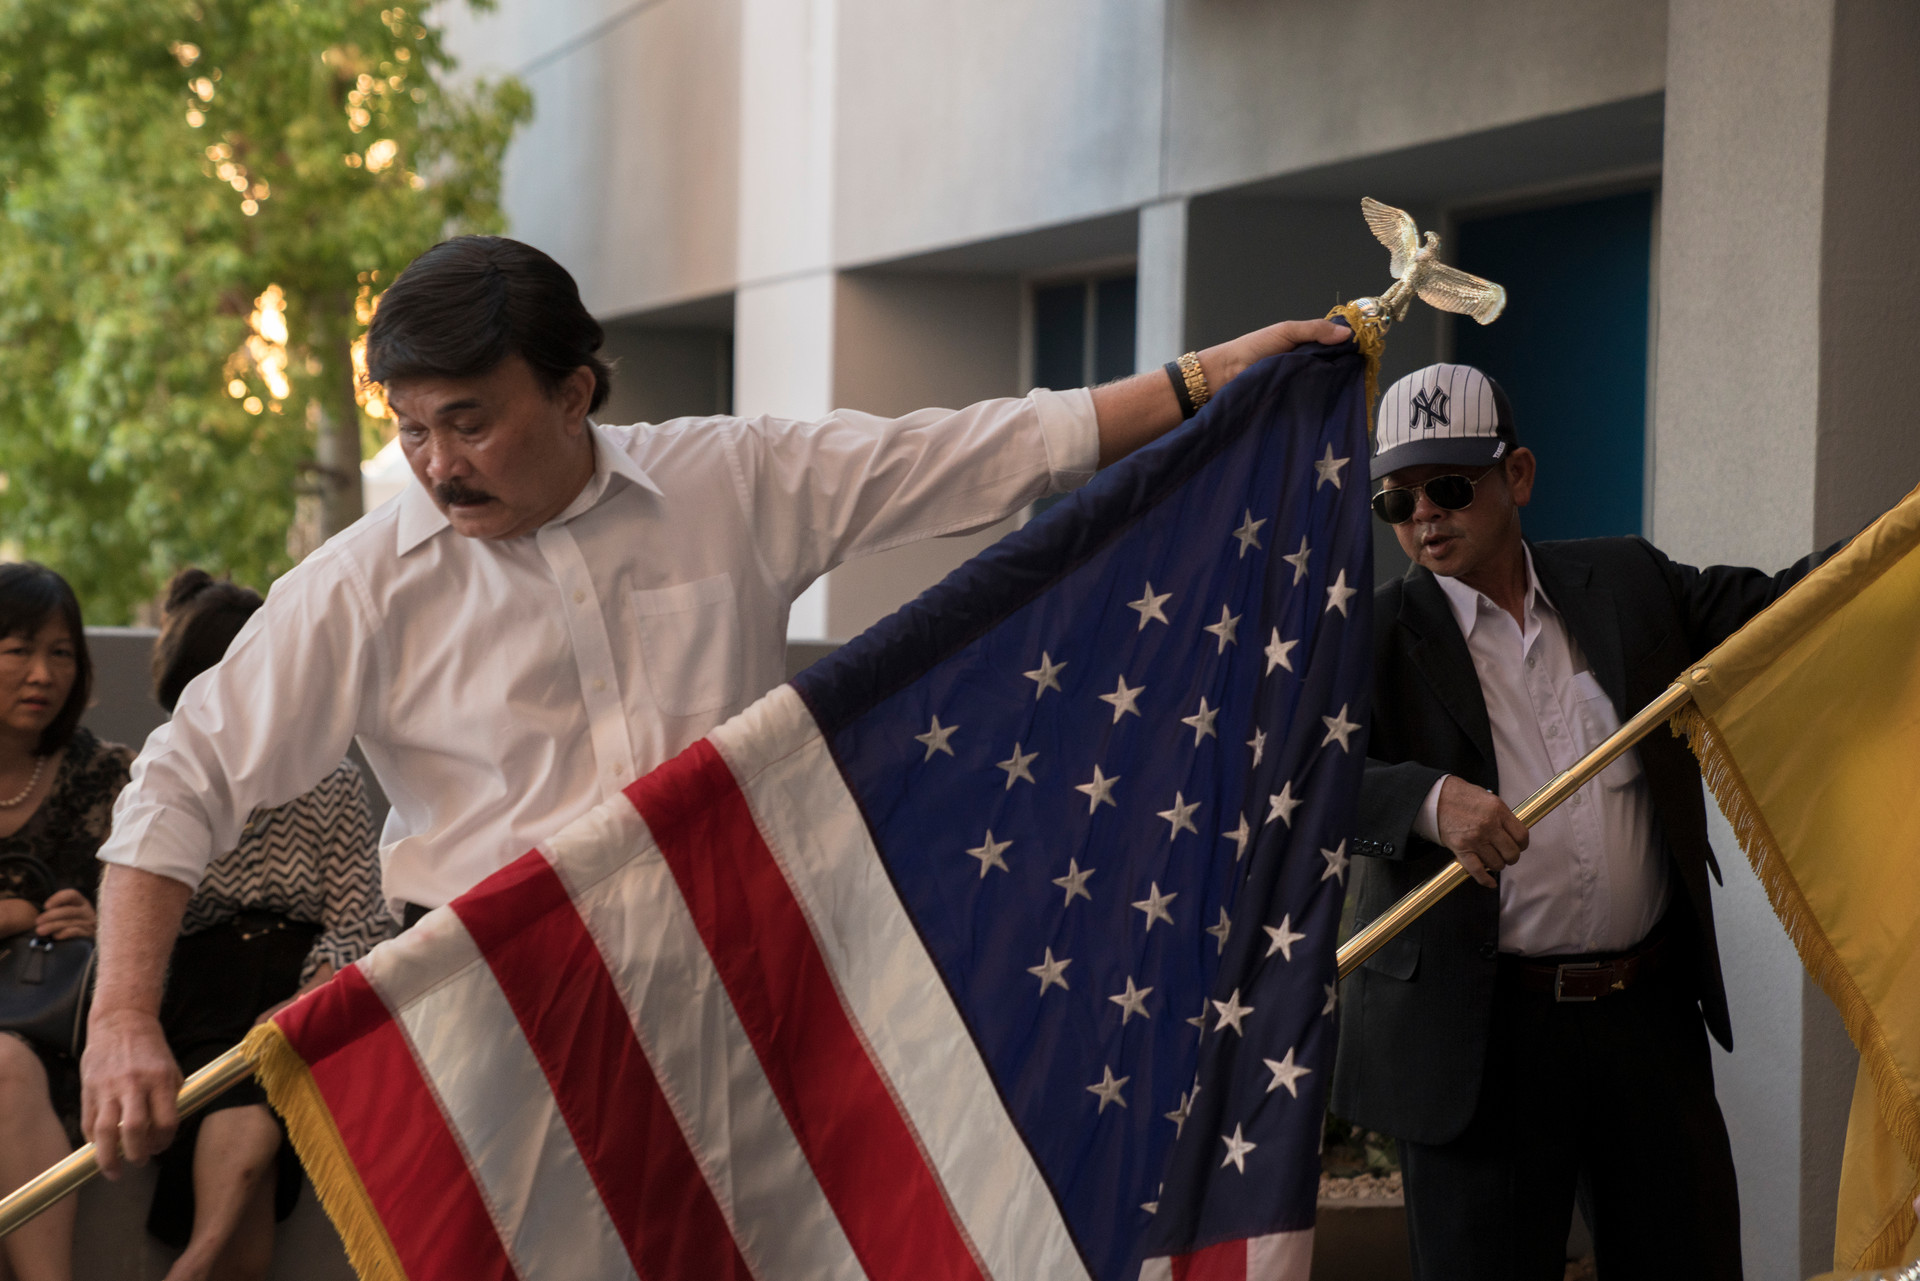 Vietnamese Association of Arizona members set up American and South Vietnemese flags for a memorial for John McCain at his office in Phoenix, Arizona on Sunday, August 26, 2018.